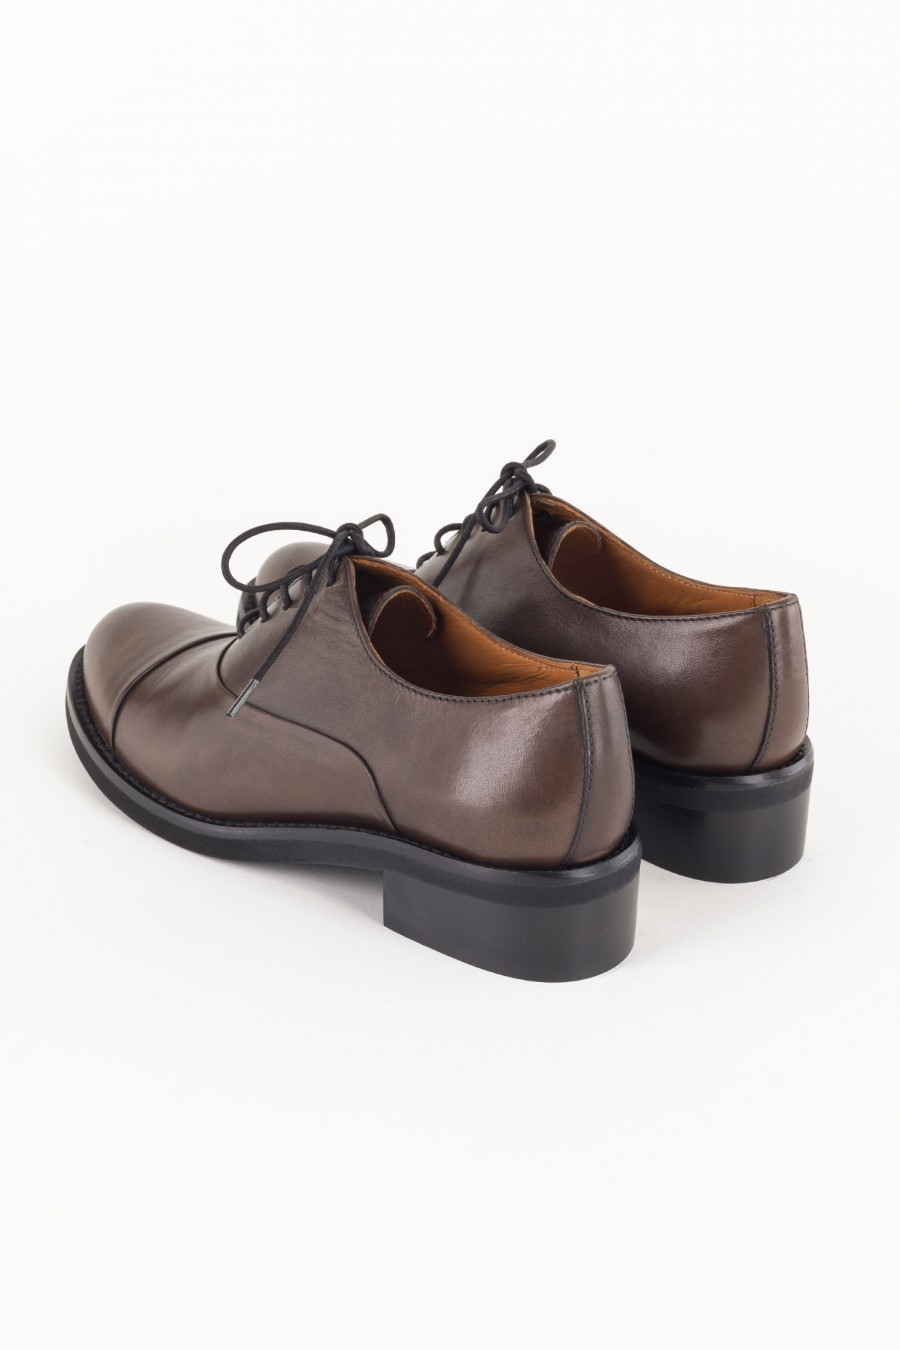 Laced brown derby shoes